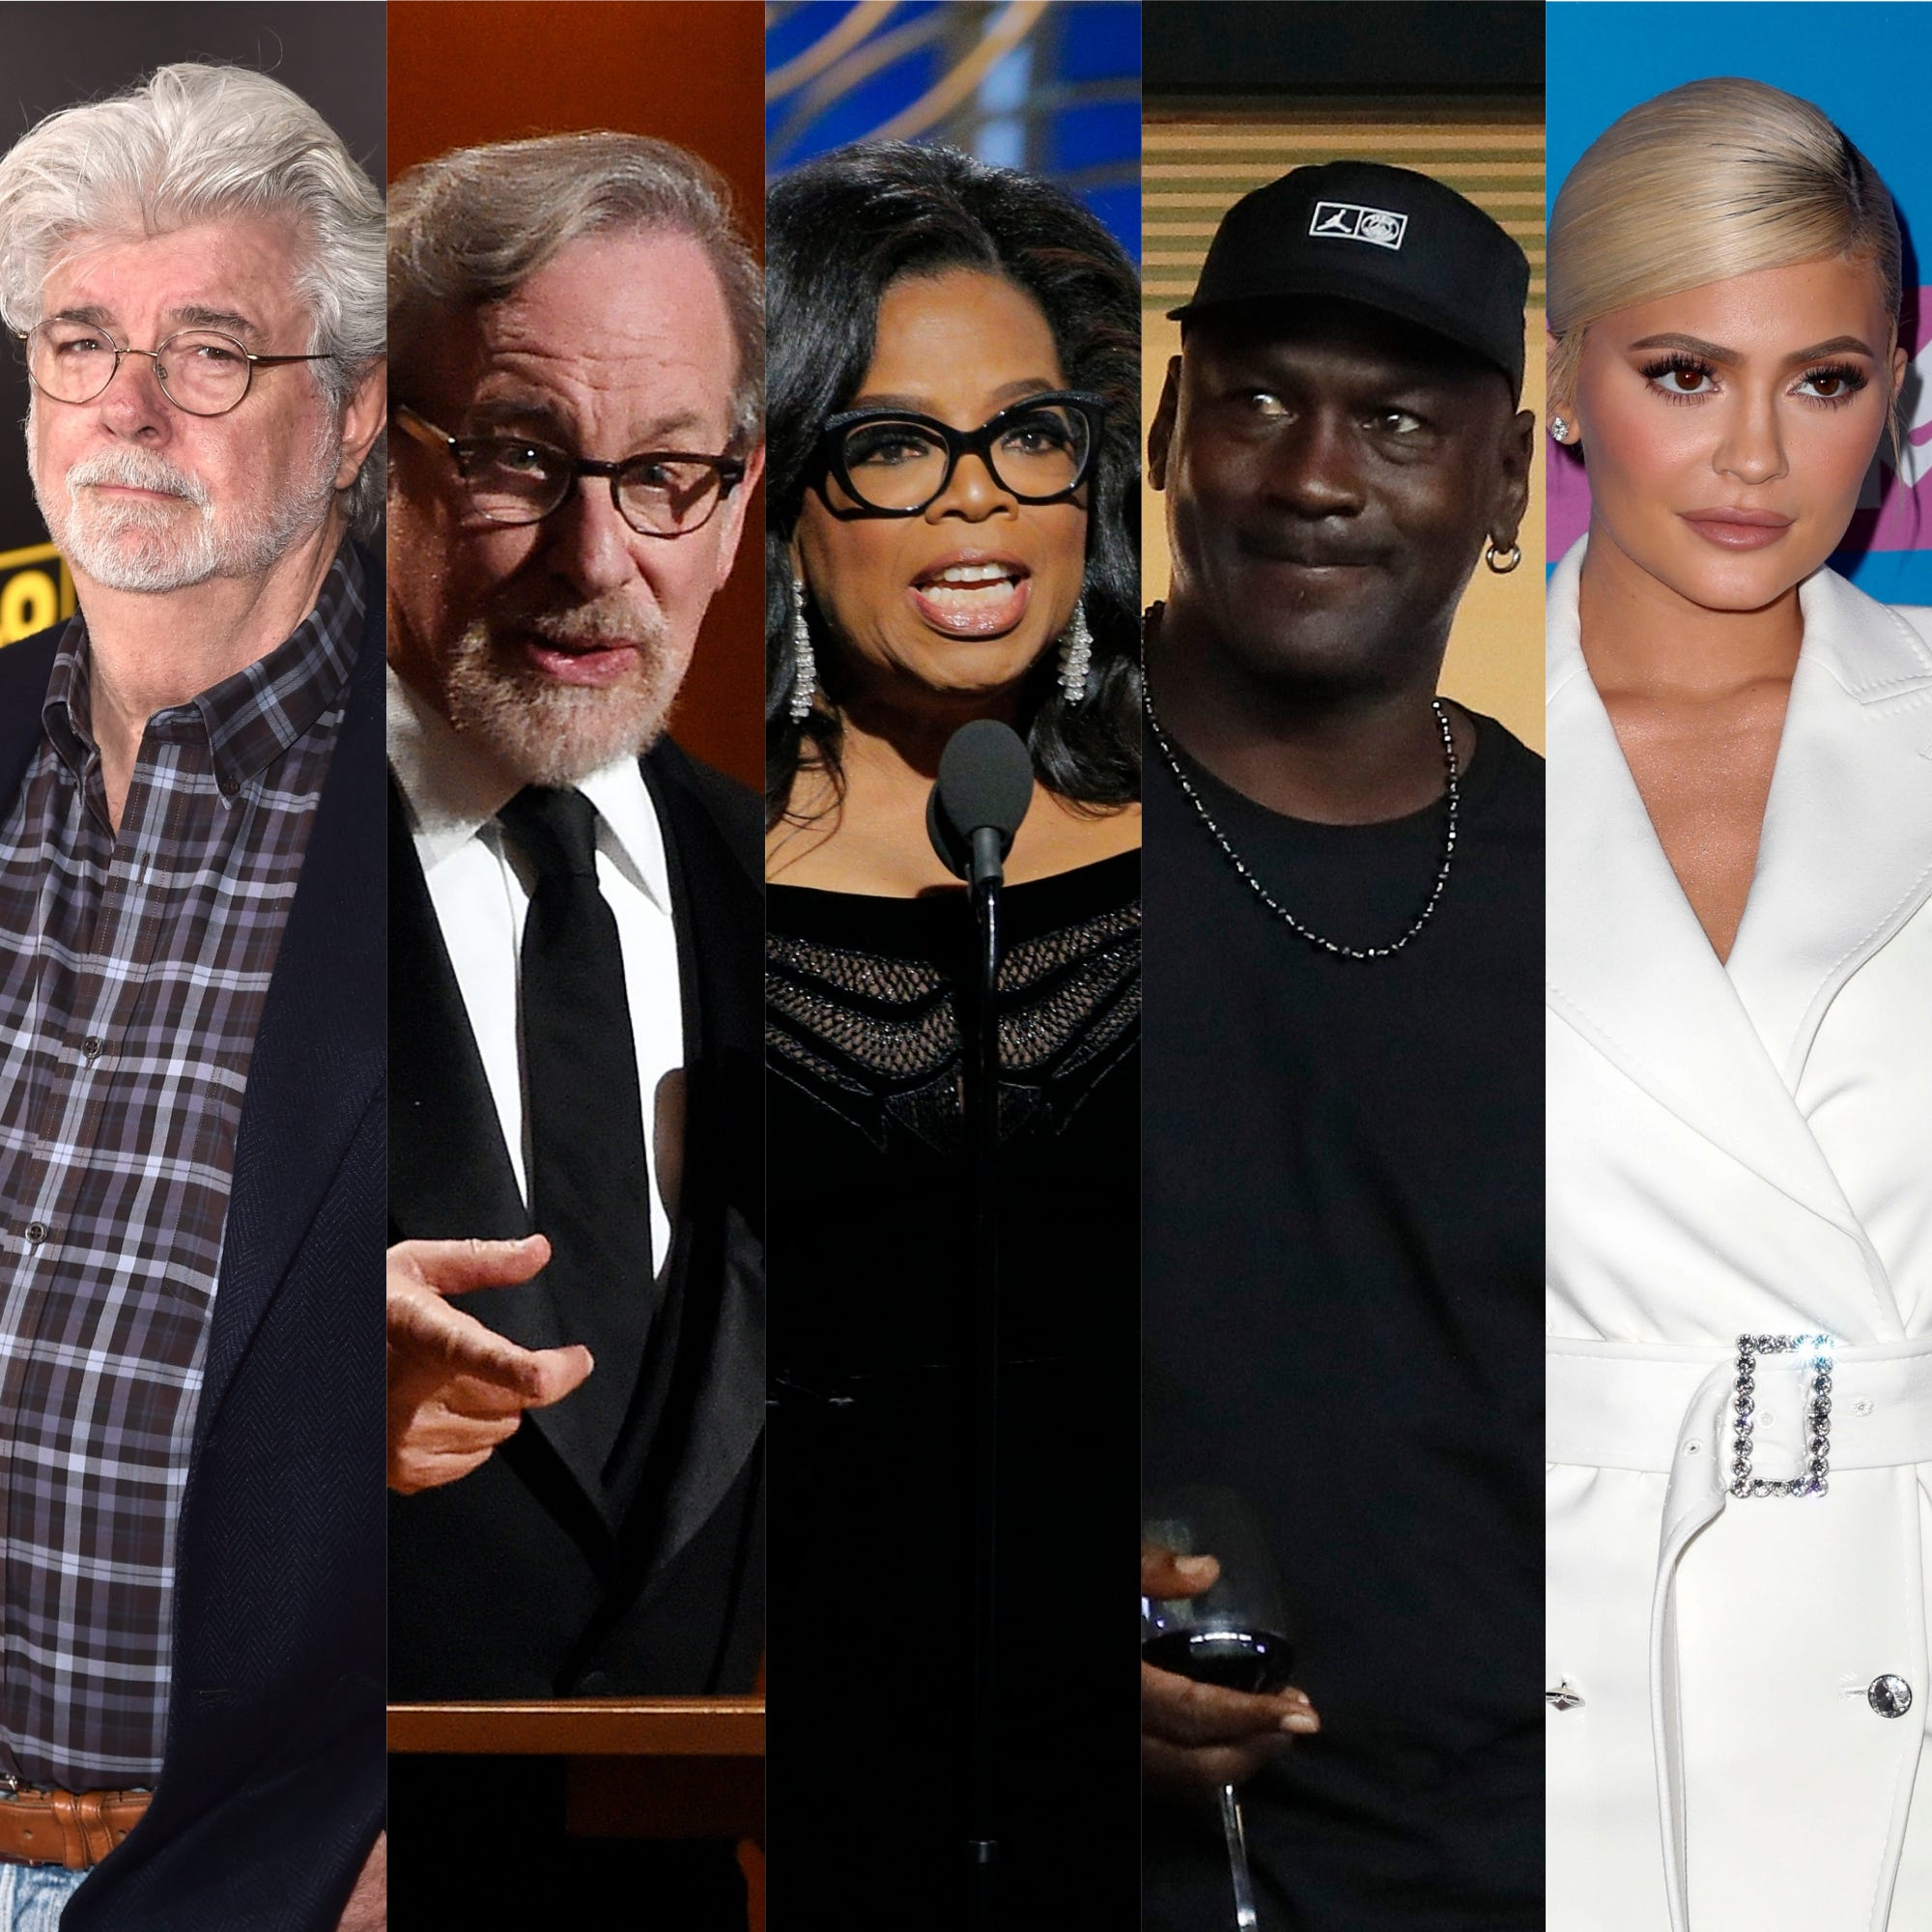 Richest Musician Of All Time 2018 The Top 20 Richest Singers in the